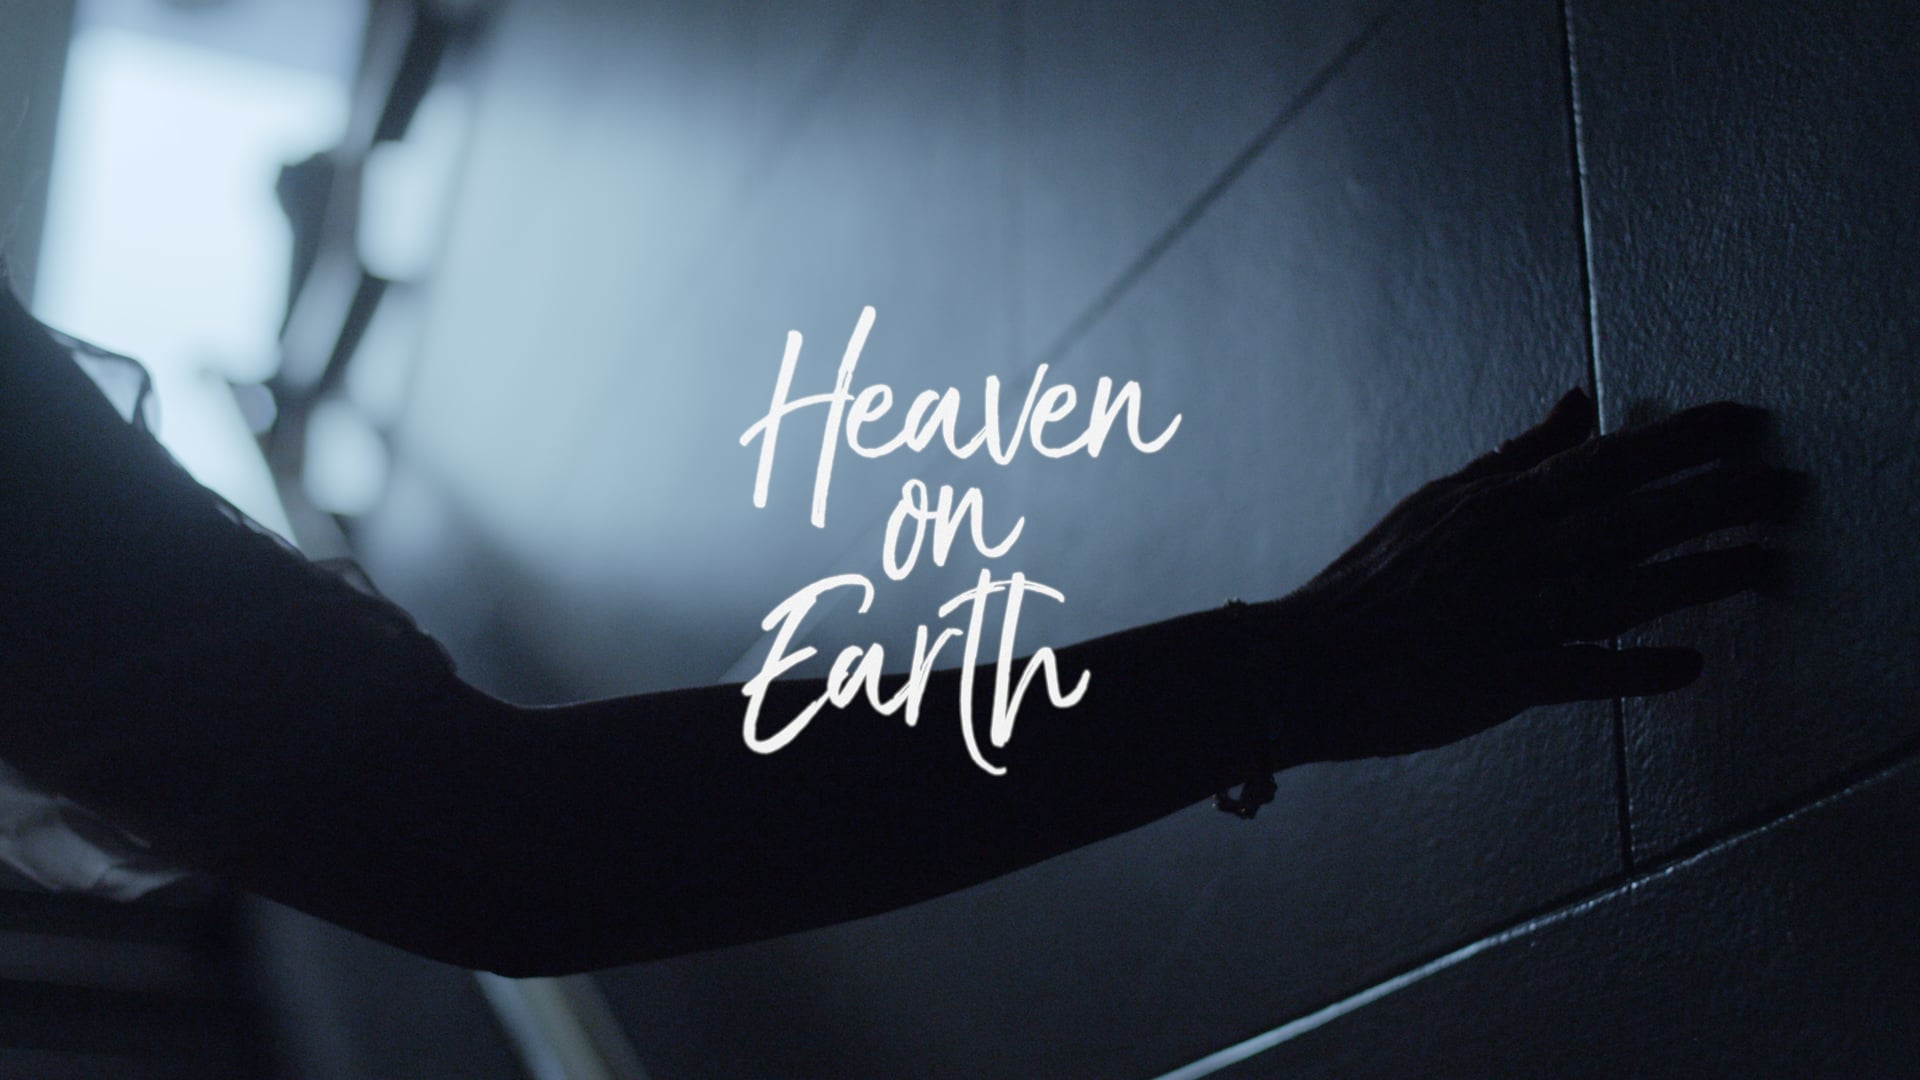 Debussy Danses with New Century Chamber Orchestra: Resonance: Episode 1 - Heaven on Earth